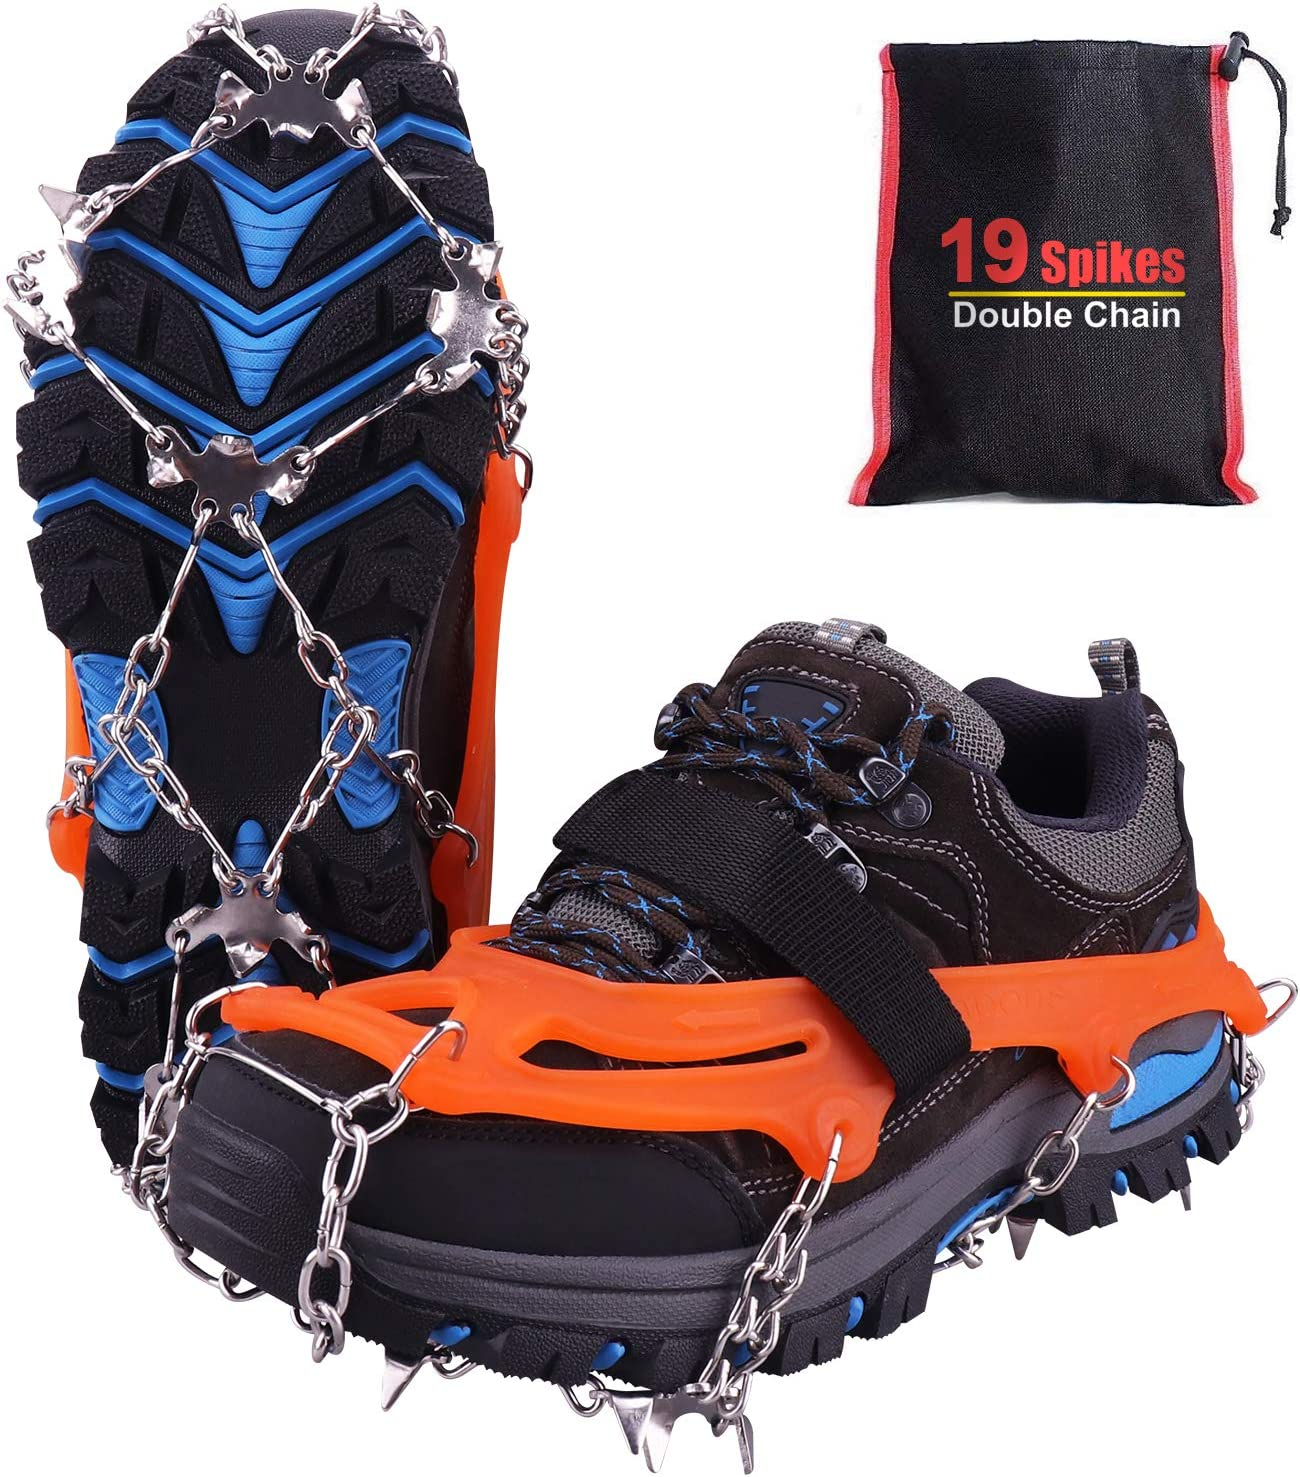 Crampon pour Chaussure, 19 Dents Crampons de Glace Universelles Glace Traction Antidérapant Grips Crampons pour Chaussures pour Alpinisme Marche